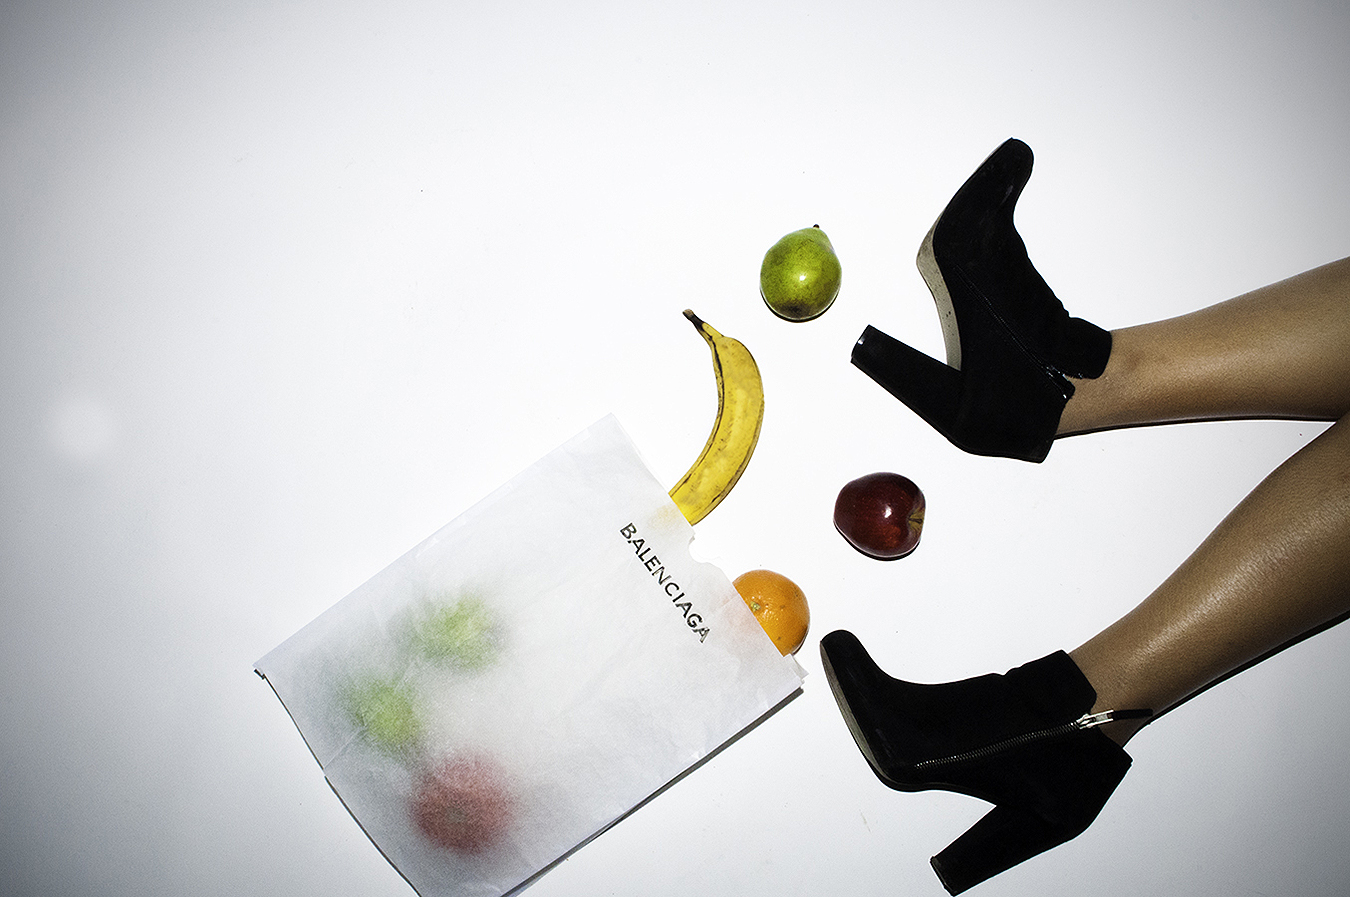 Noel_Zheng_photography_student_upenn_Tony_Ward_Studo_photography_still_life_fashion_domestic_feminism_equality_makeup_beauty_high_heel_shoes_boots_legs_kitchen_grocery_shopping_fruit_balenciaga